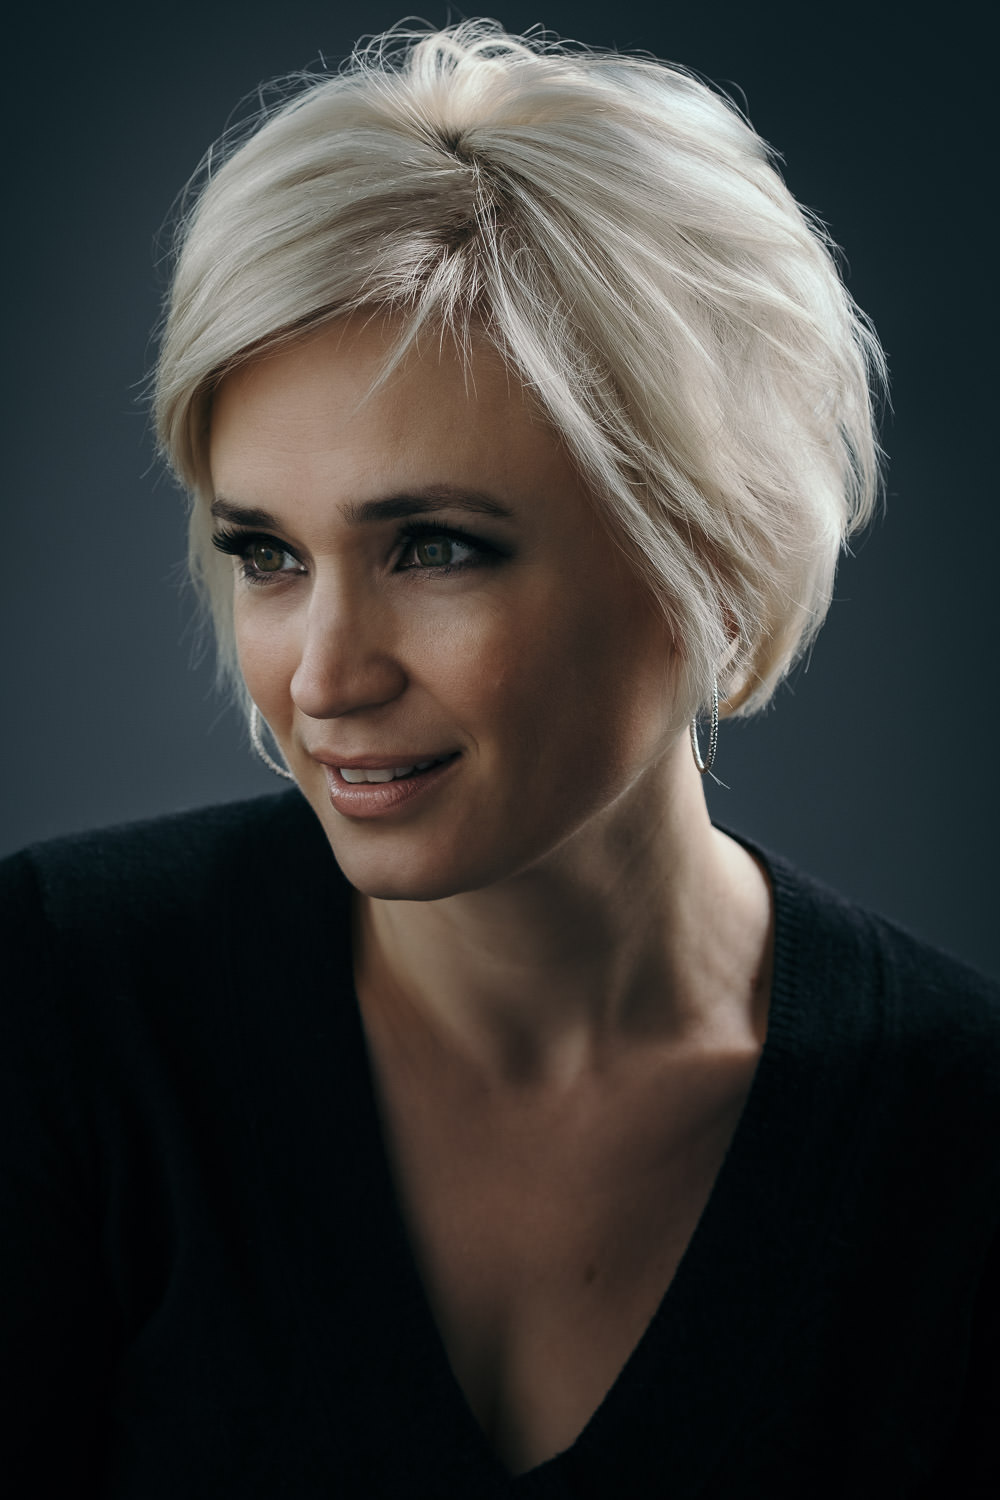 professional model headshot of a woman with a blonde hair in Madison Wisconsin photo studio